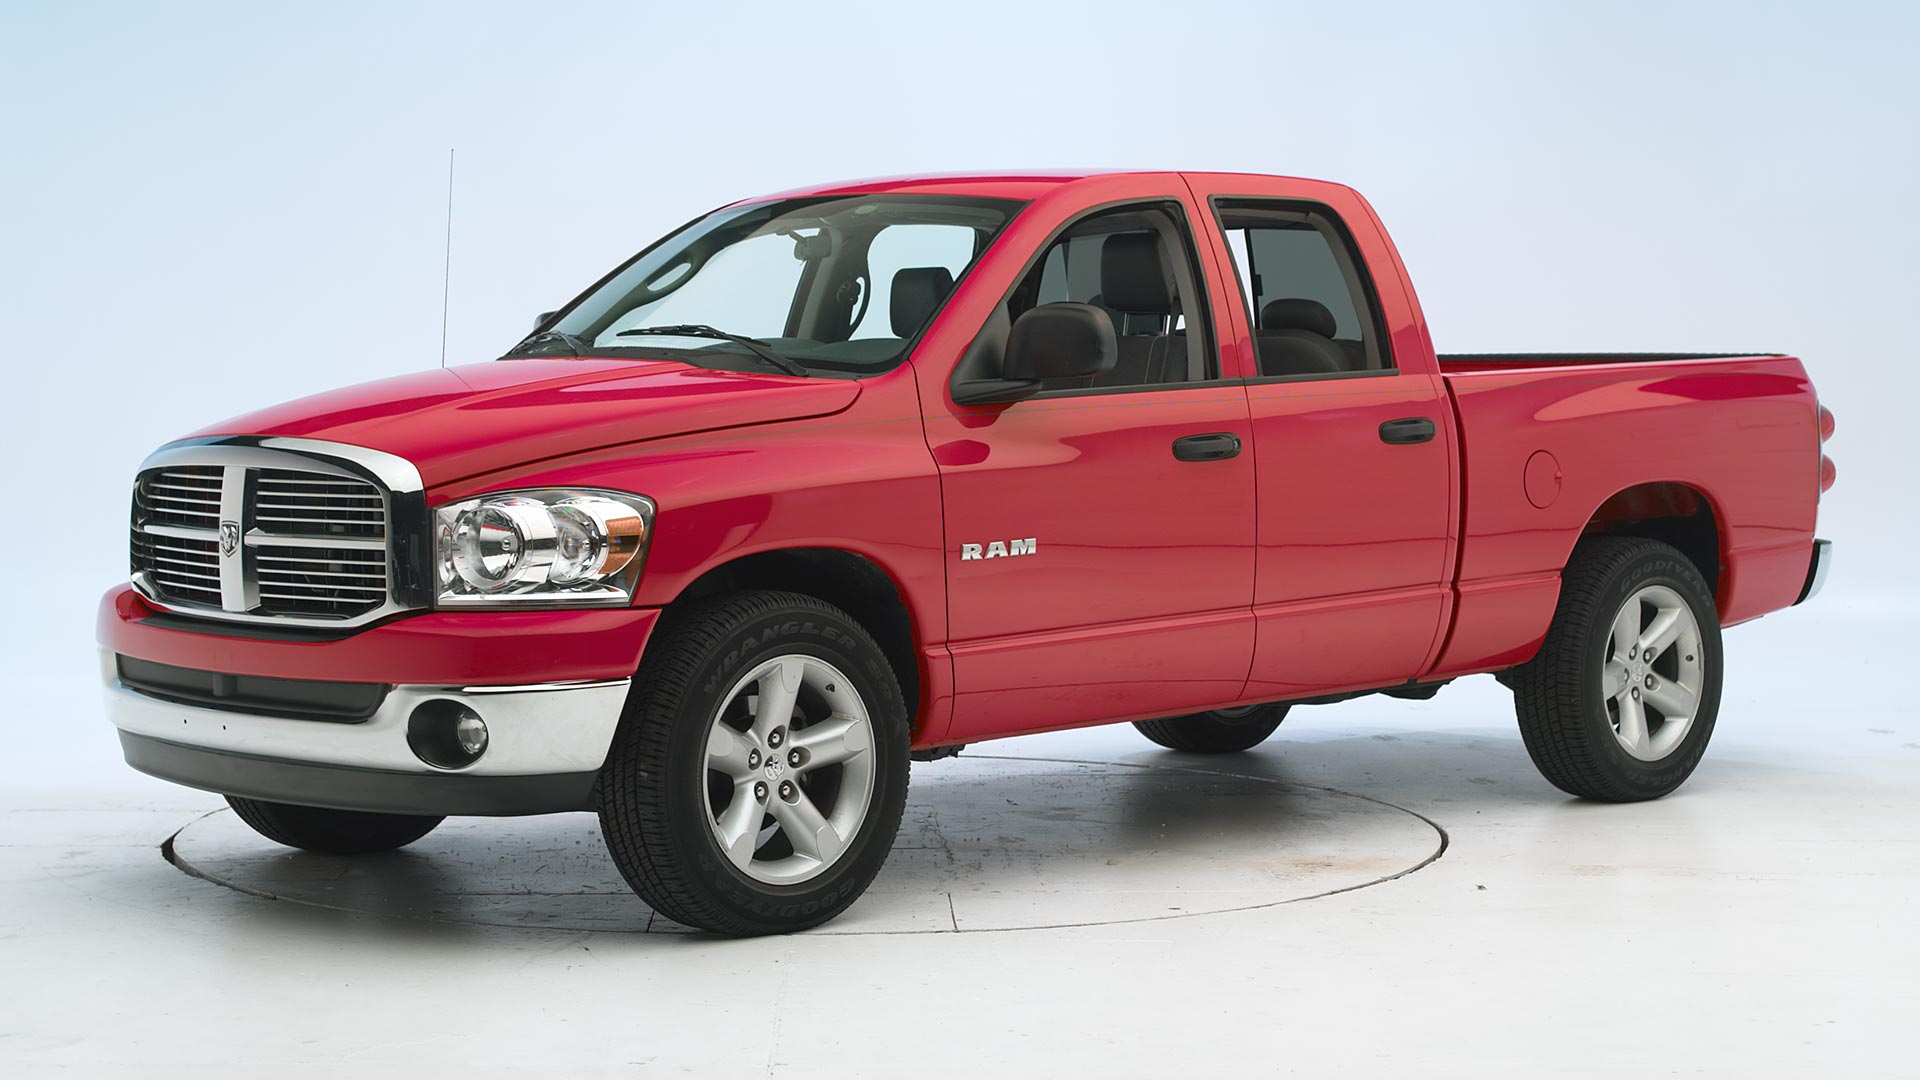 2008 Dodge Ram 1500 Extended cab pickup